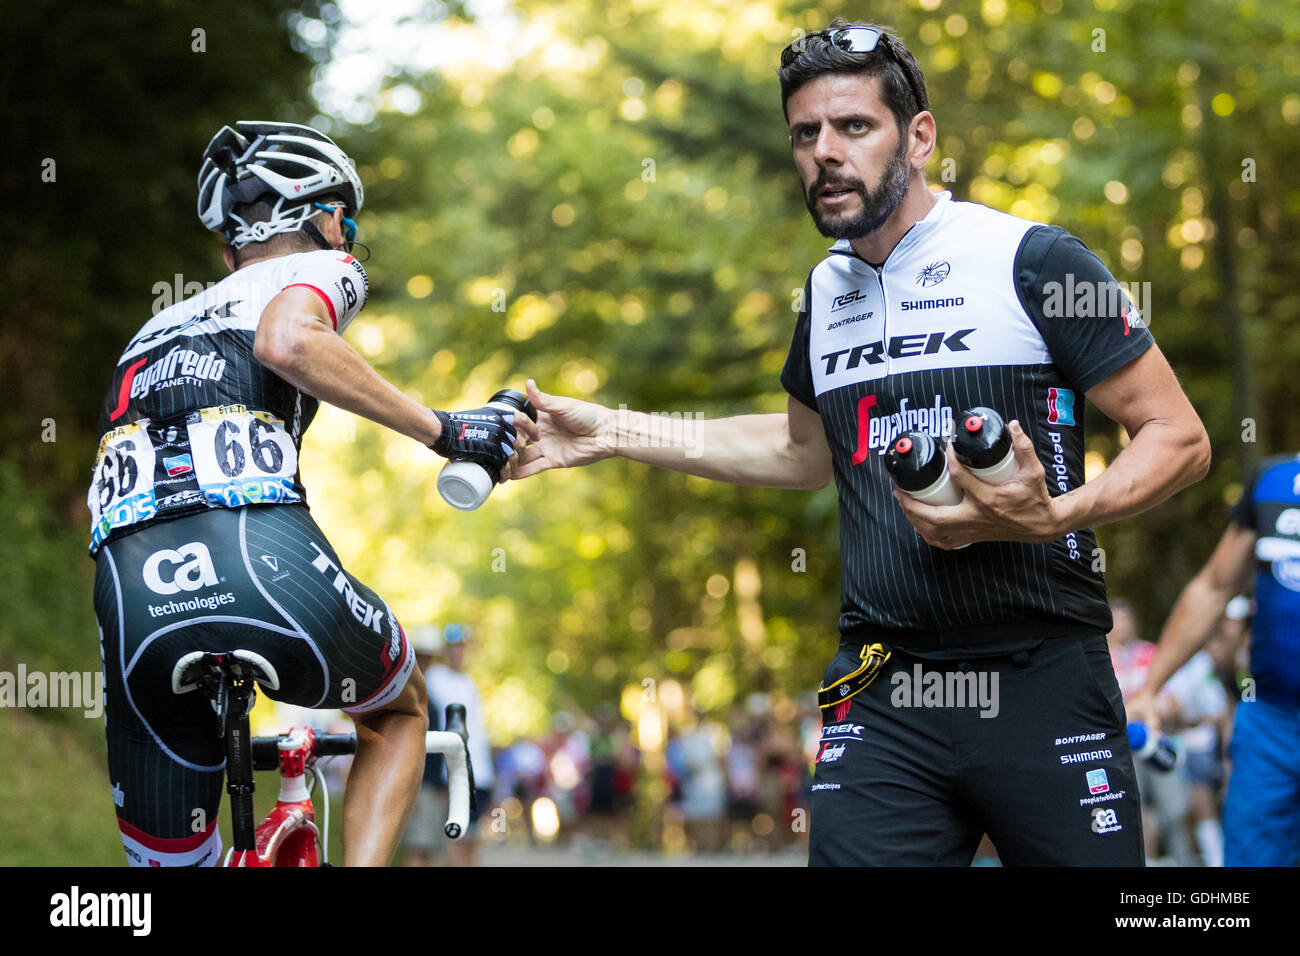 Anglefort, France. 17th July, 2016. 17th July, 2016. Ain, FR. A Trek-Segafredo soigneur hands off a bottle to Peter - Stock Image